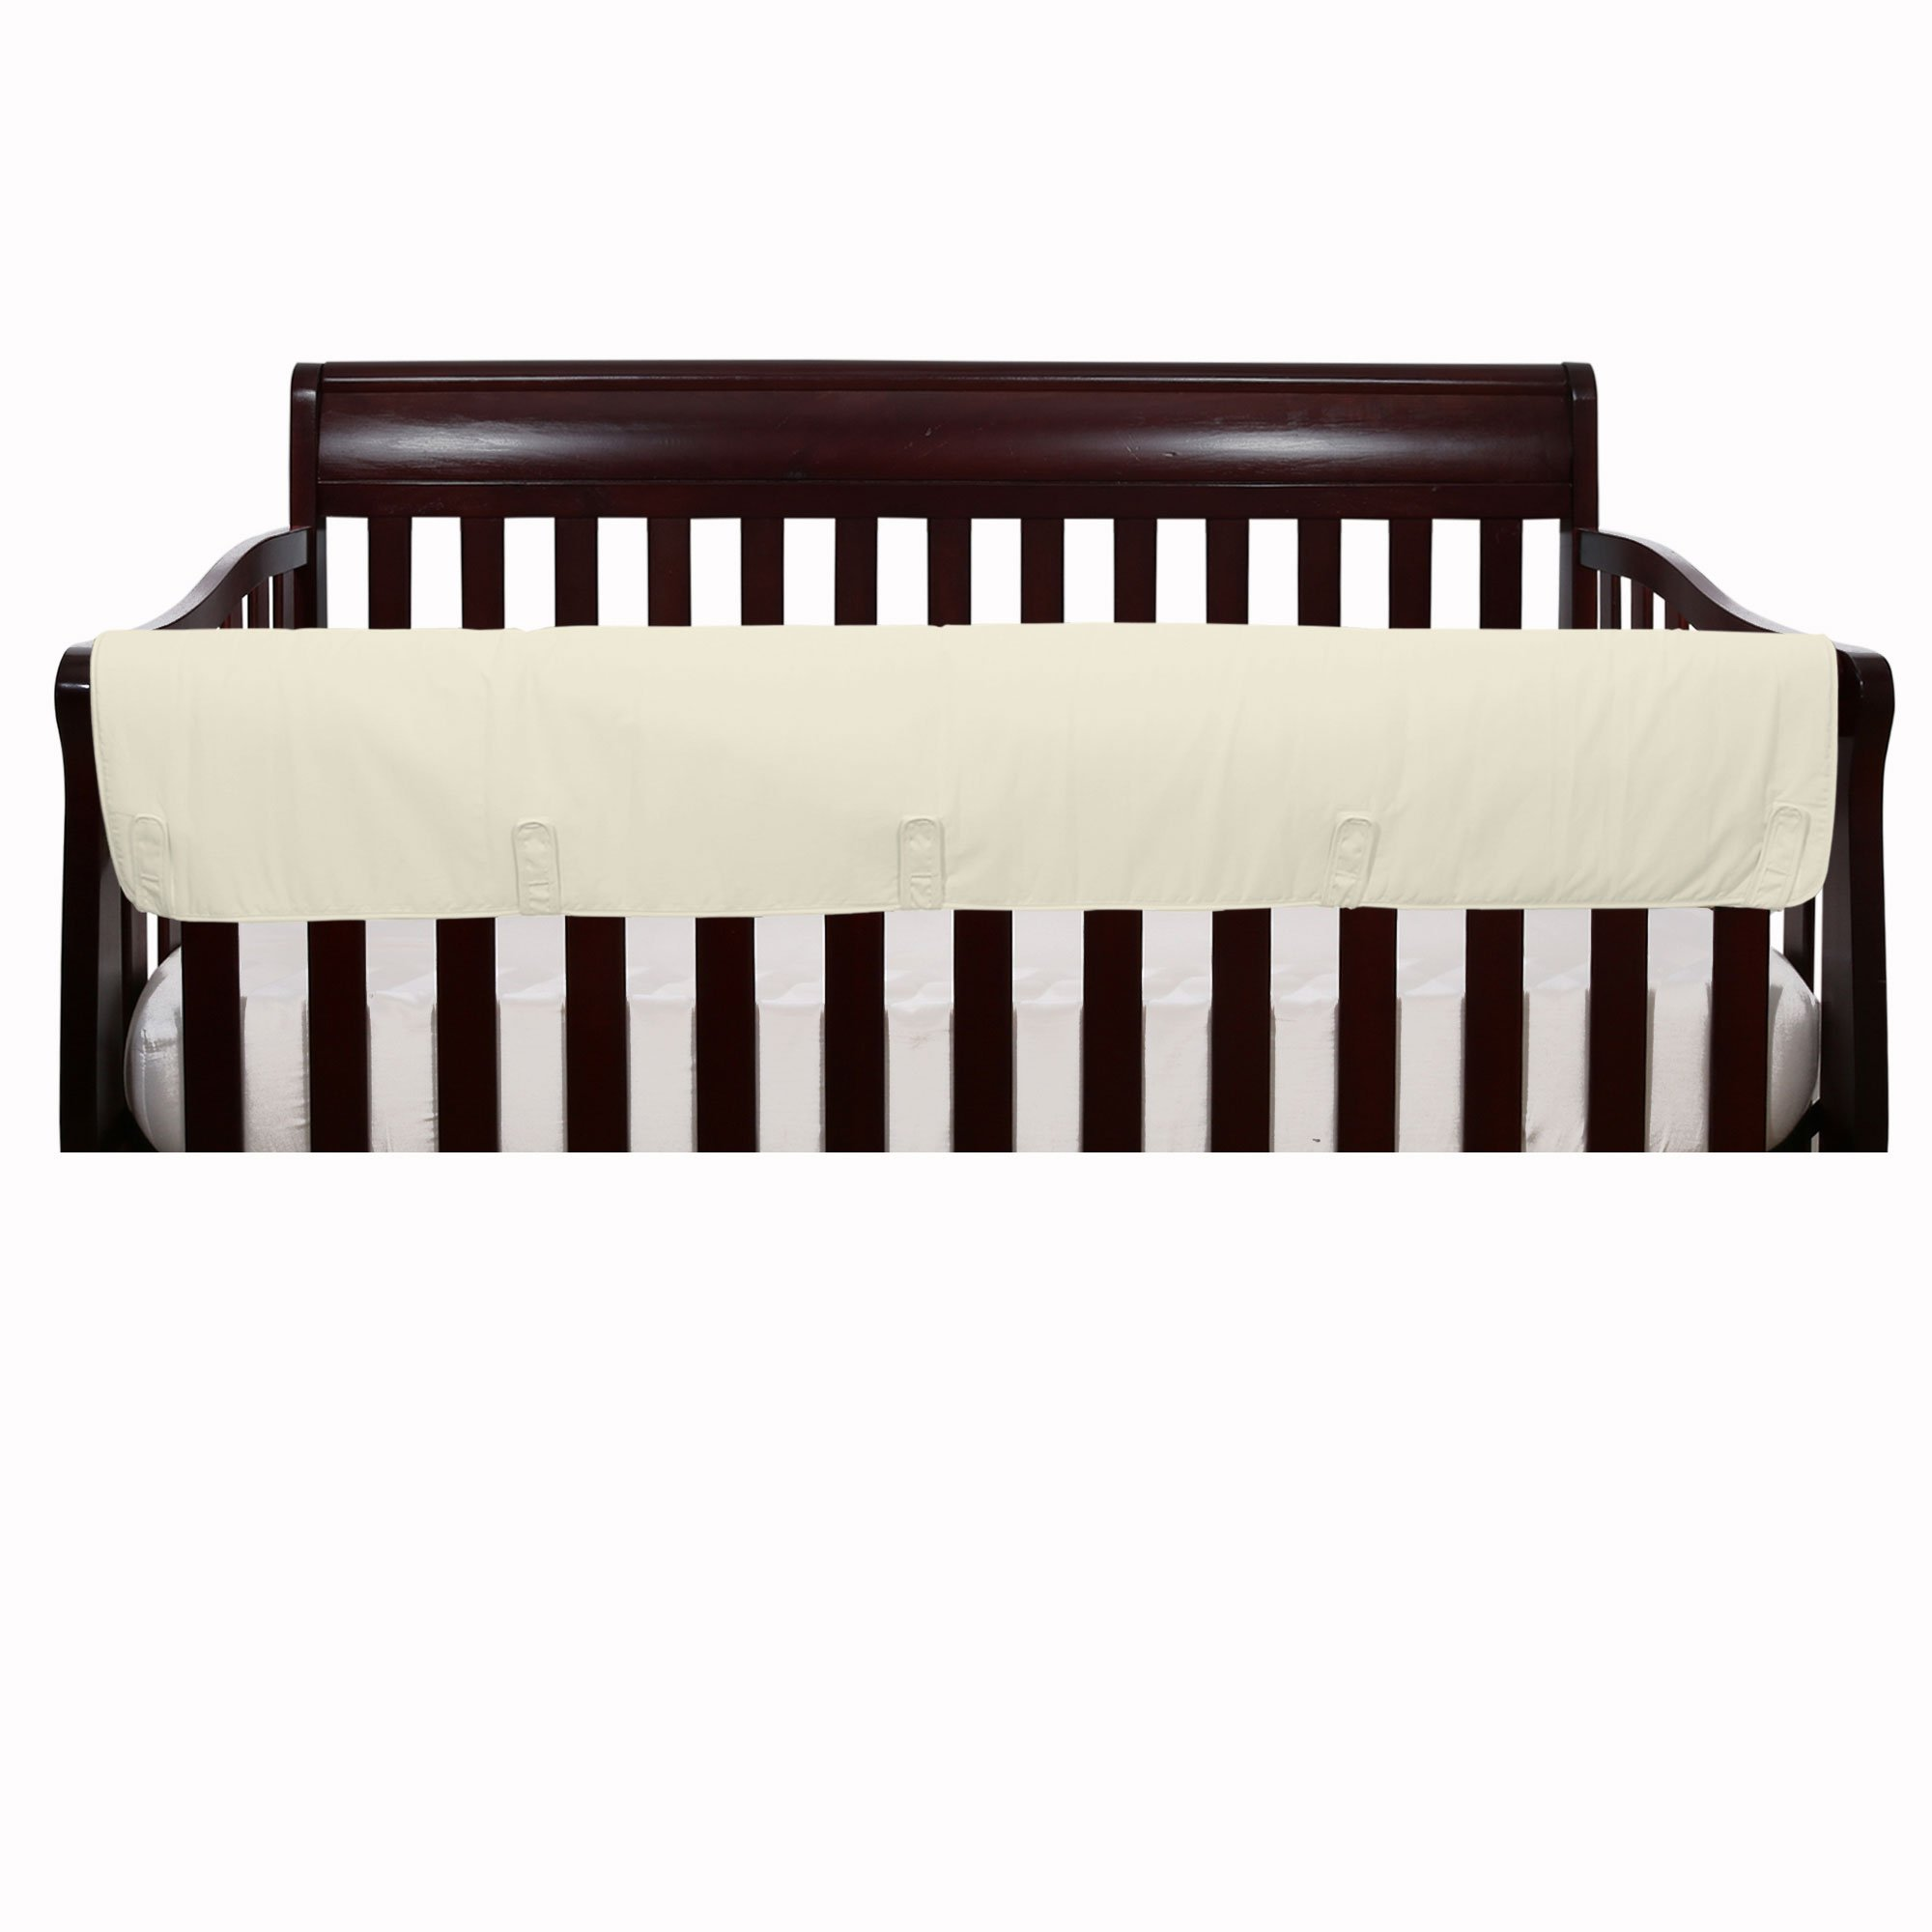 Solid Ivory Front Crib Rail Guard Padded Protector - 100% Cotton Fabrics